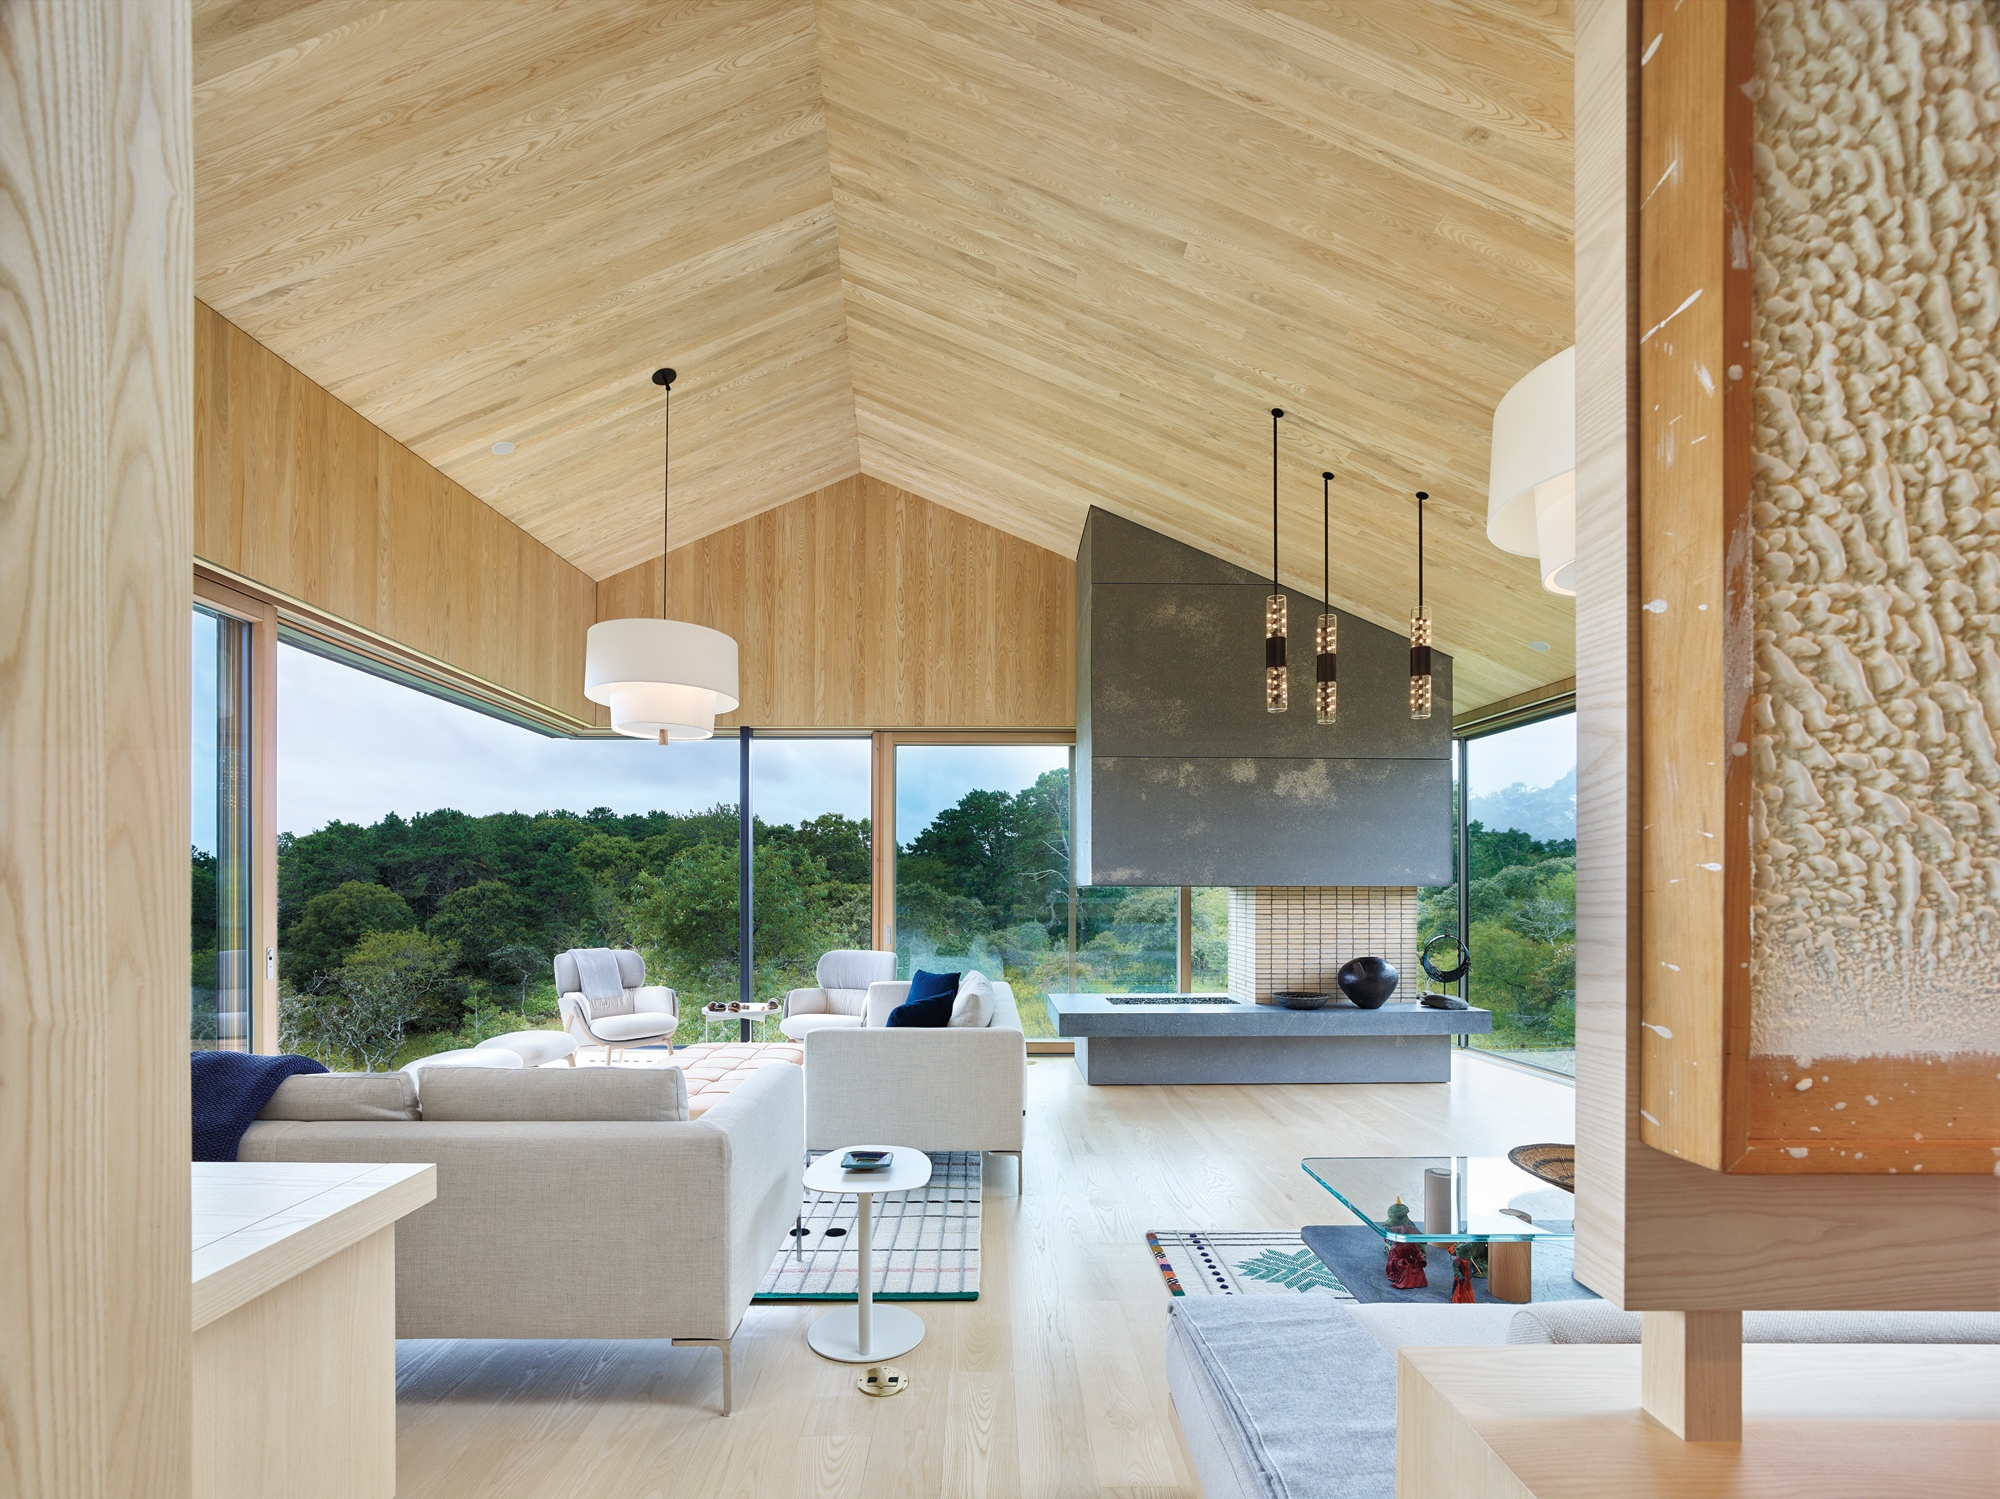 In Martha S Vineyard Gray Organschi And Aaron Schiller Meticulously Craft A Family Home